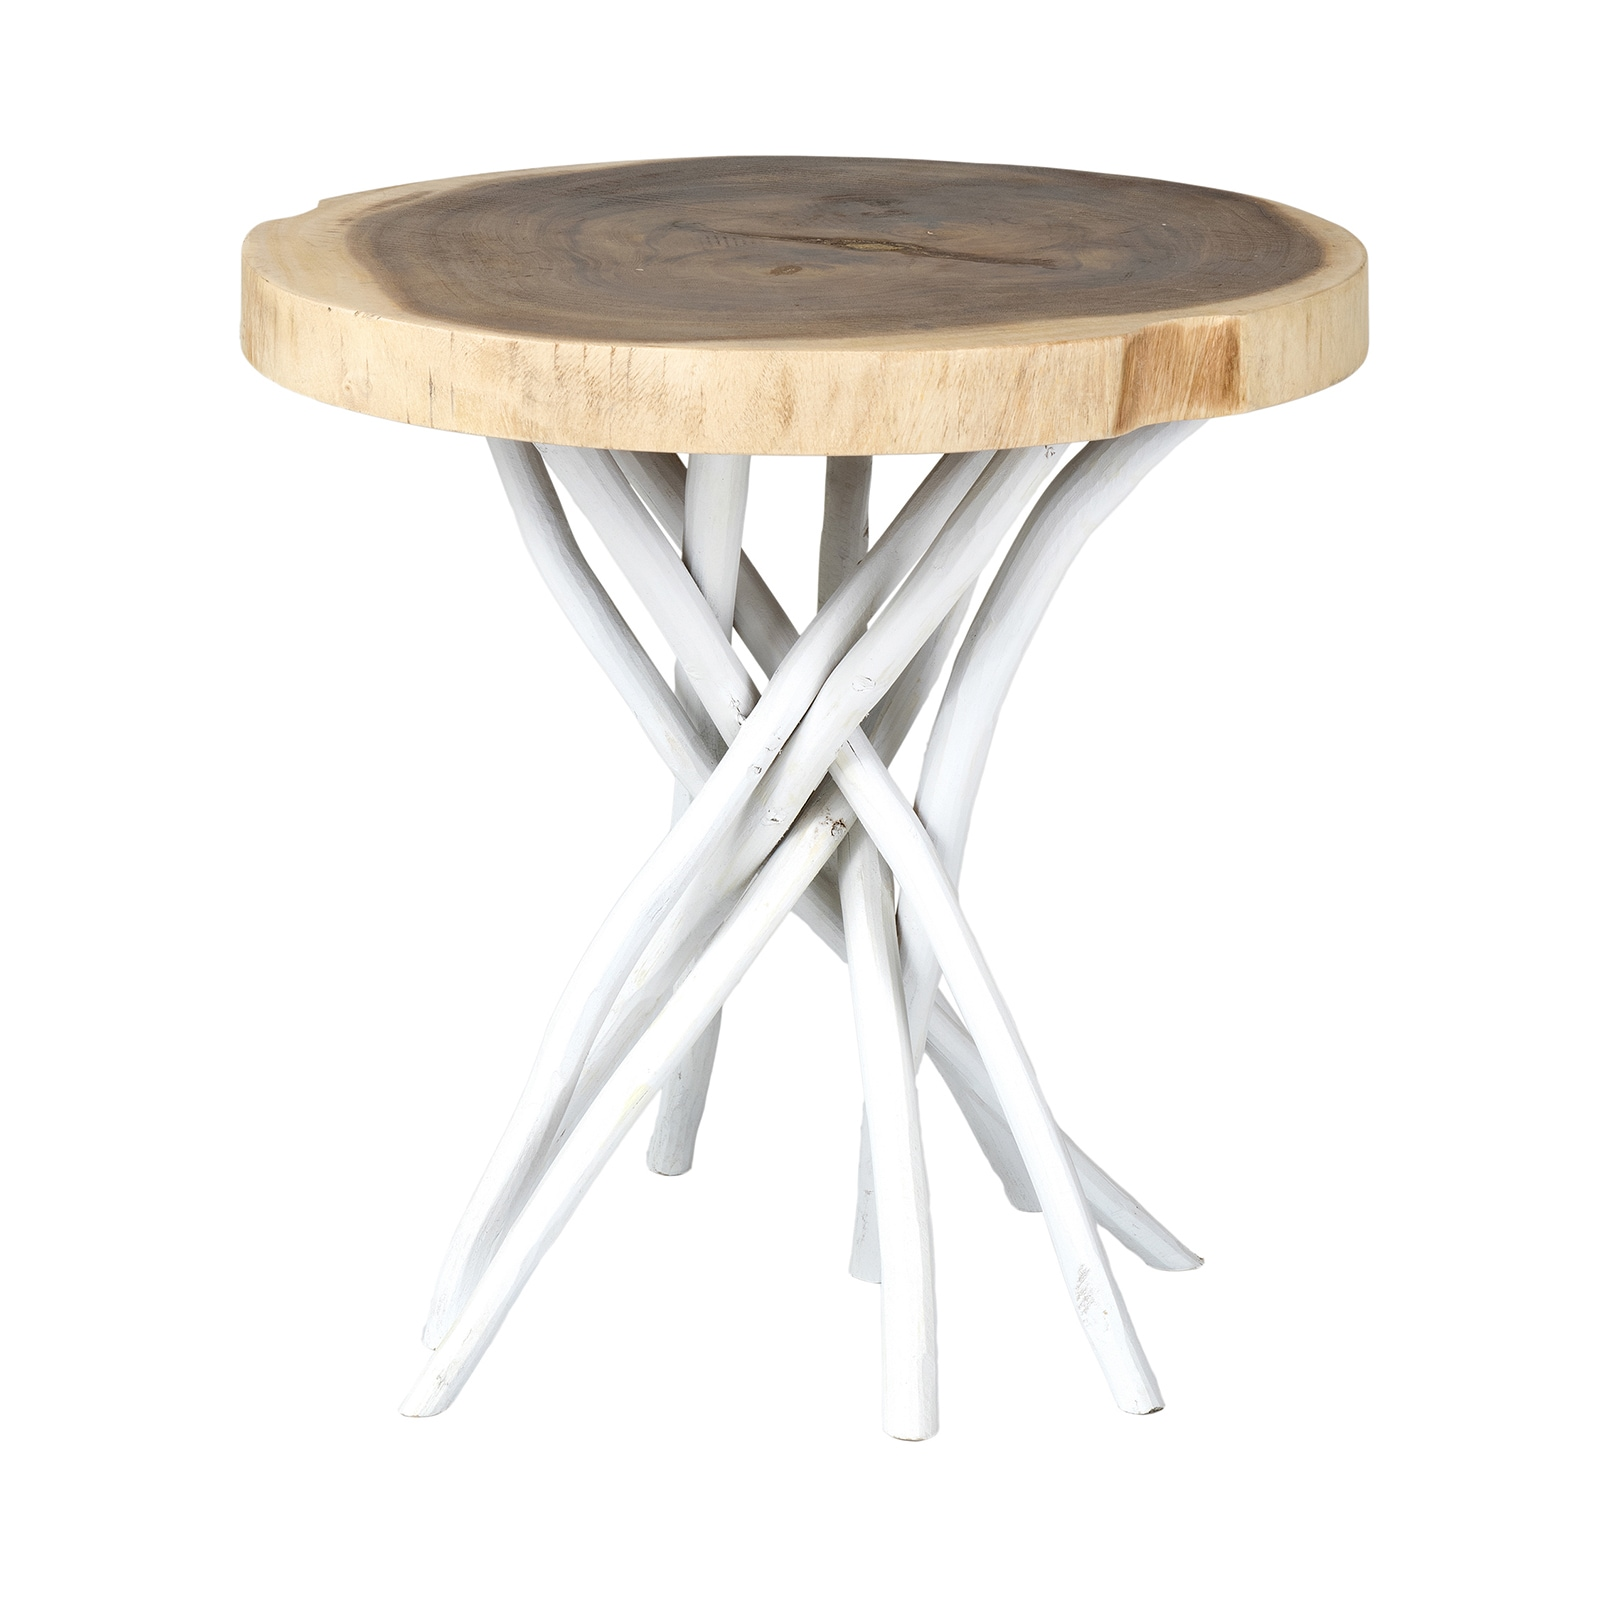 east main joeslin white teakwood round accent table mains stool free shipping today multi colored black dining chairs side west elm sconce and gold bedside lamps target teal